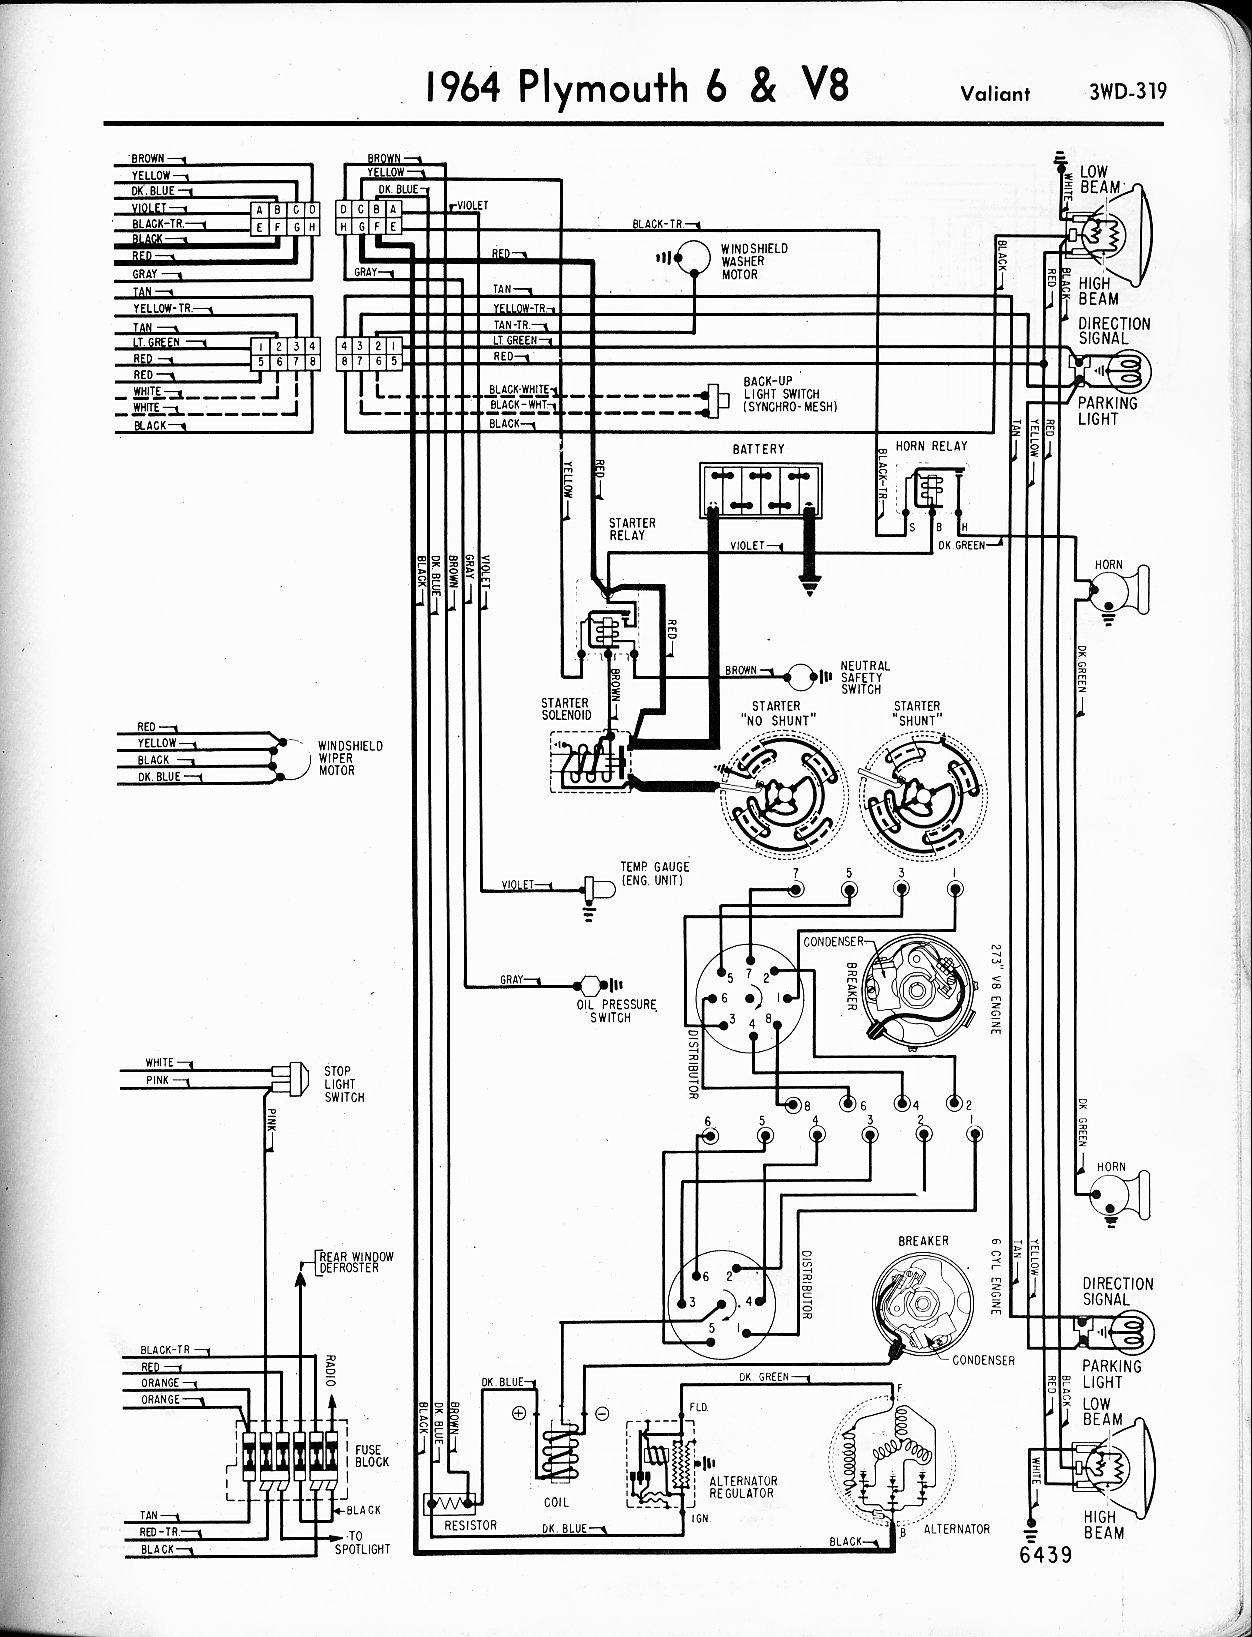 74 mopar alternator wiring diagram get free image about wiring diagram